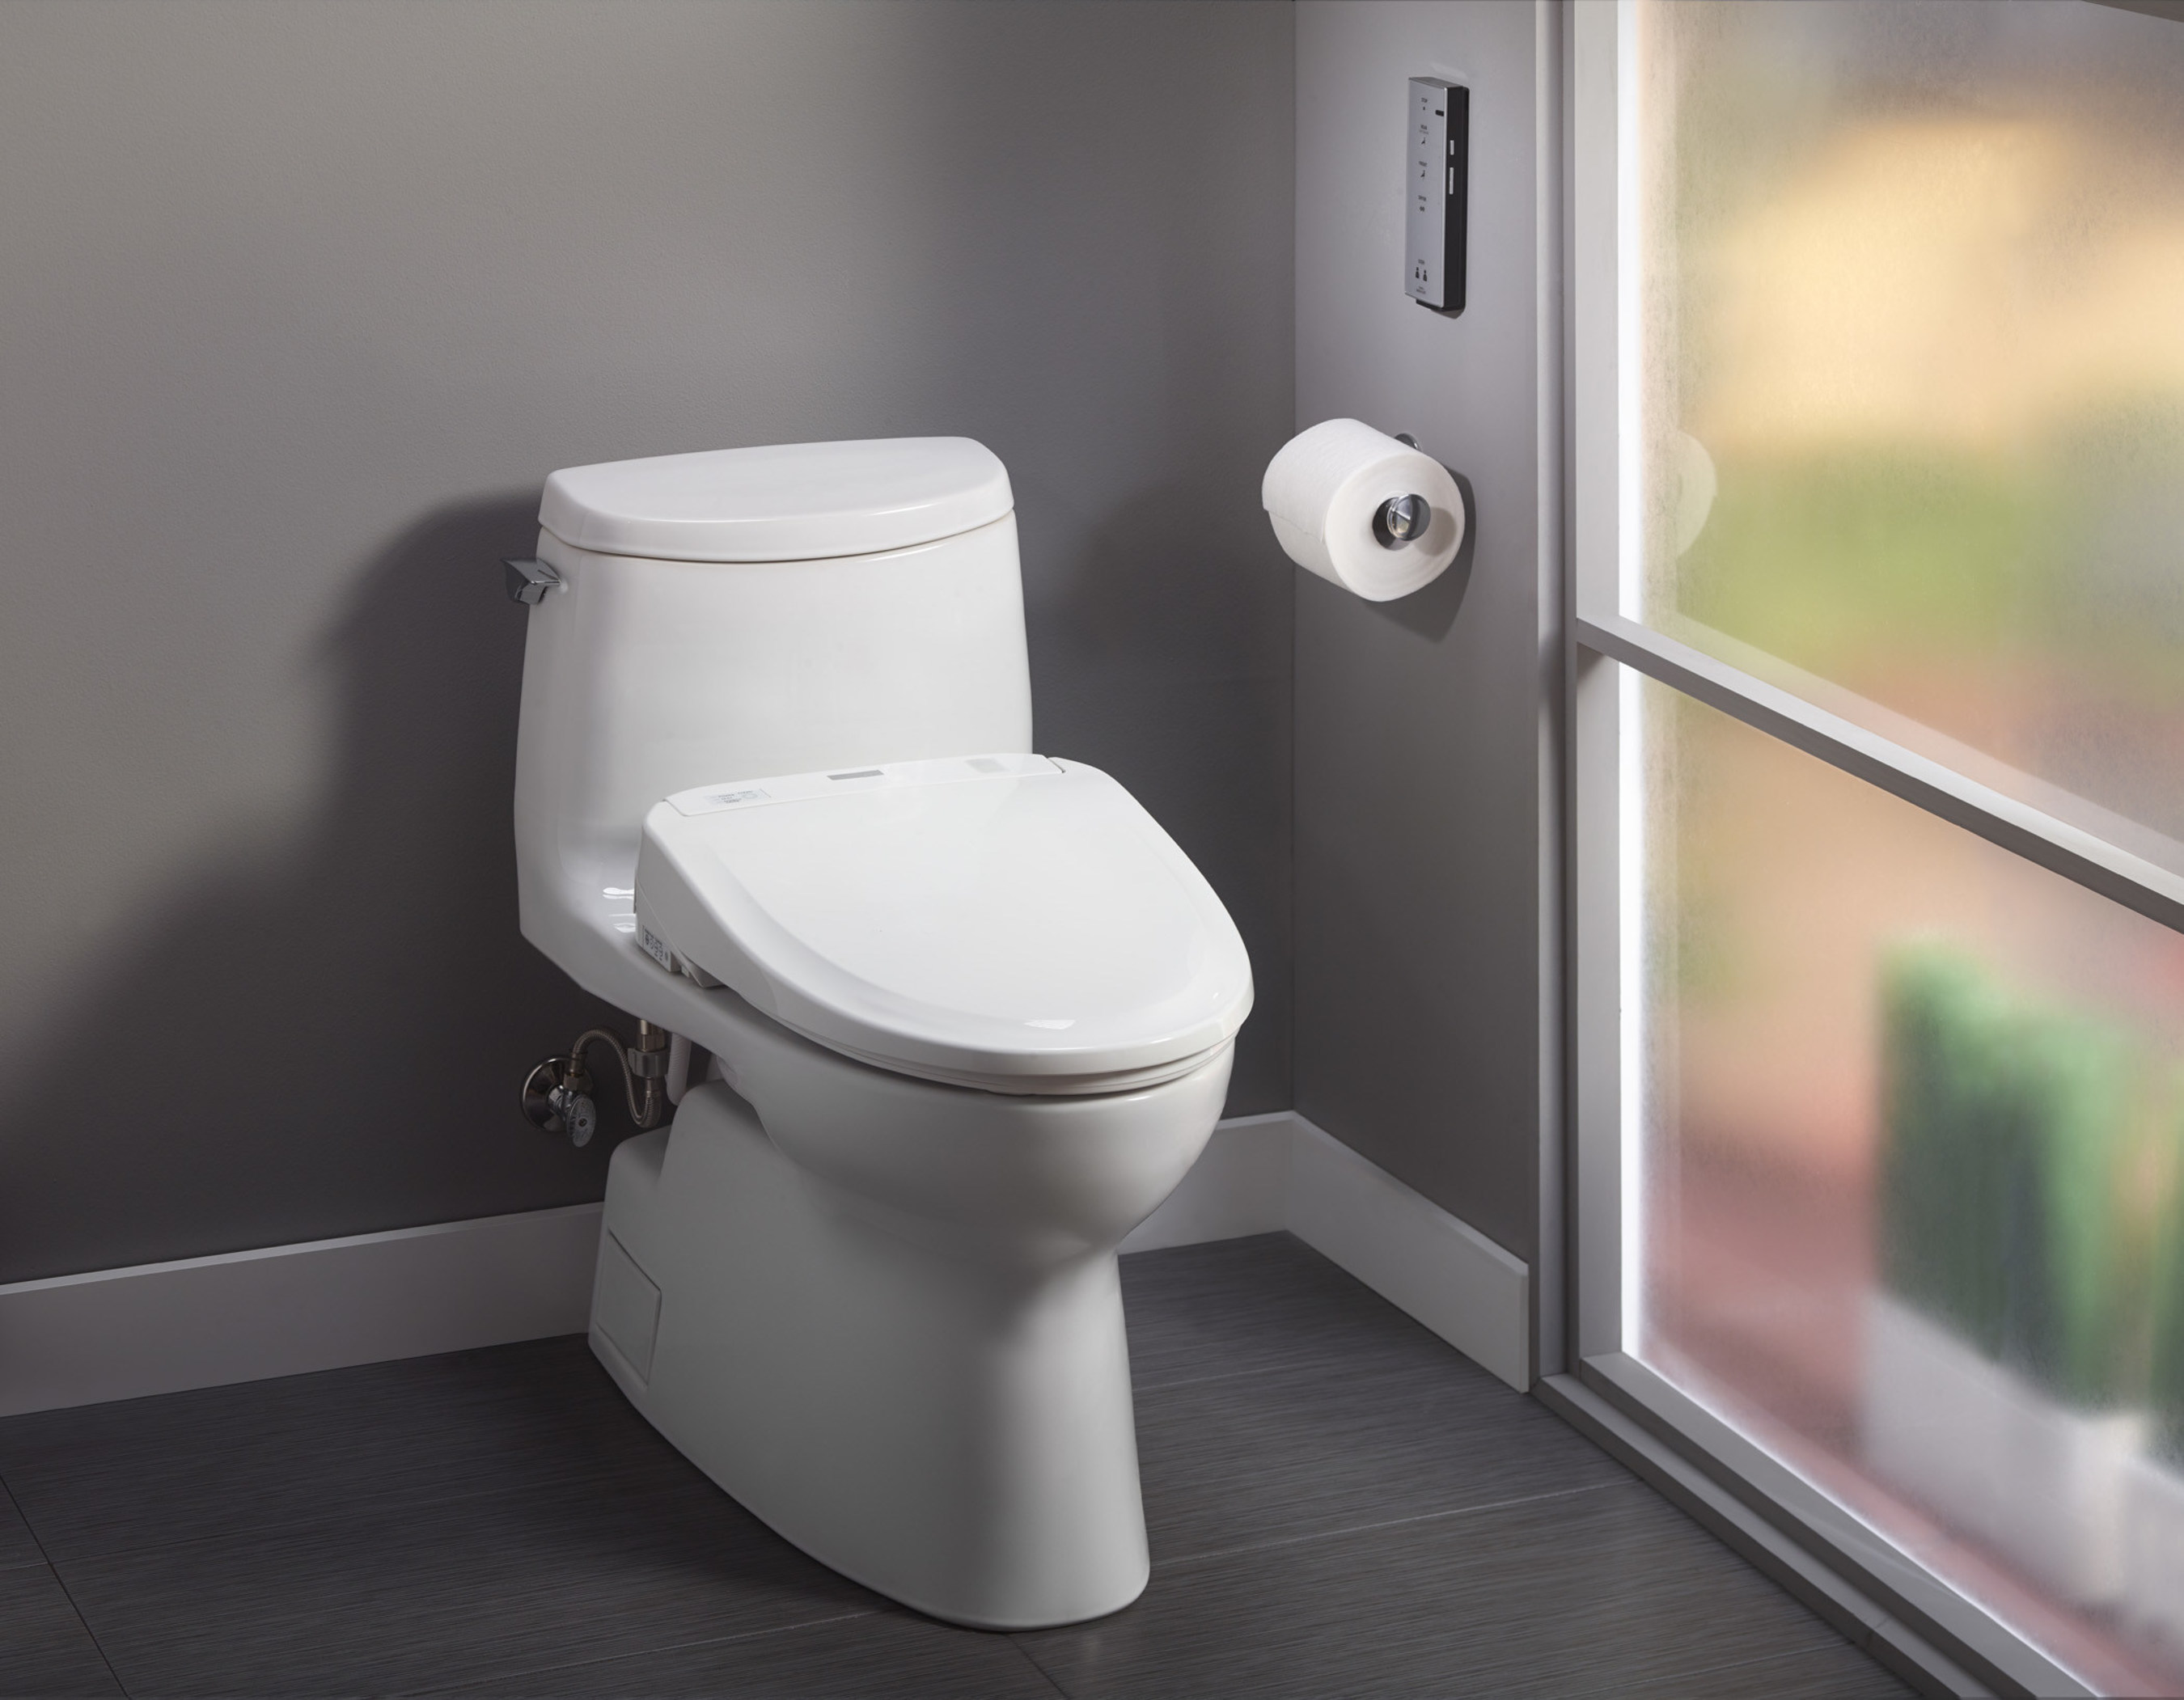 TOTO's innovative new Connect+ System neatly conceals the Washlet's power cord and water supply hose for an elegant seamless look that enhances any bath decor. Comprised of specially-designed Washlets and TOTO's water-efficient Tornado Flush toilets, the Connect+ System offers homeowners superior design aesthetics, water savings, technological innovation, superior cleanliness and over 40 different combination possibilities.